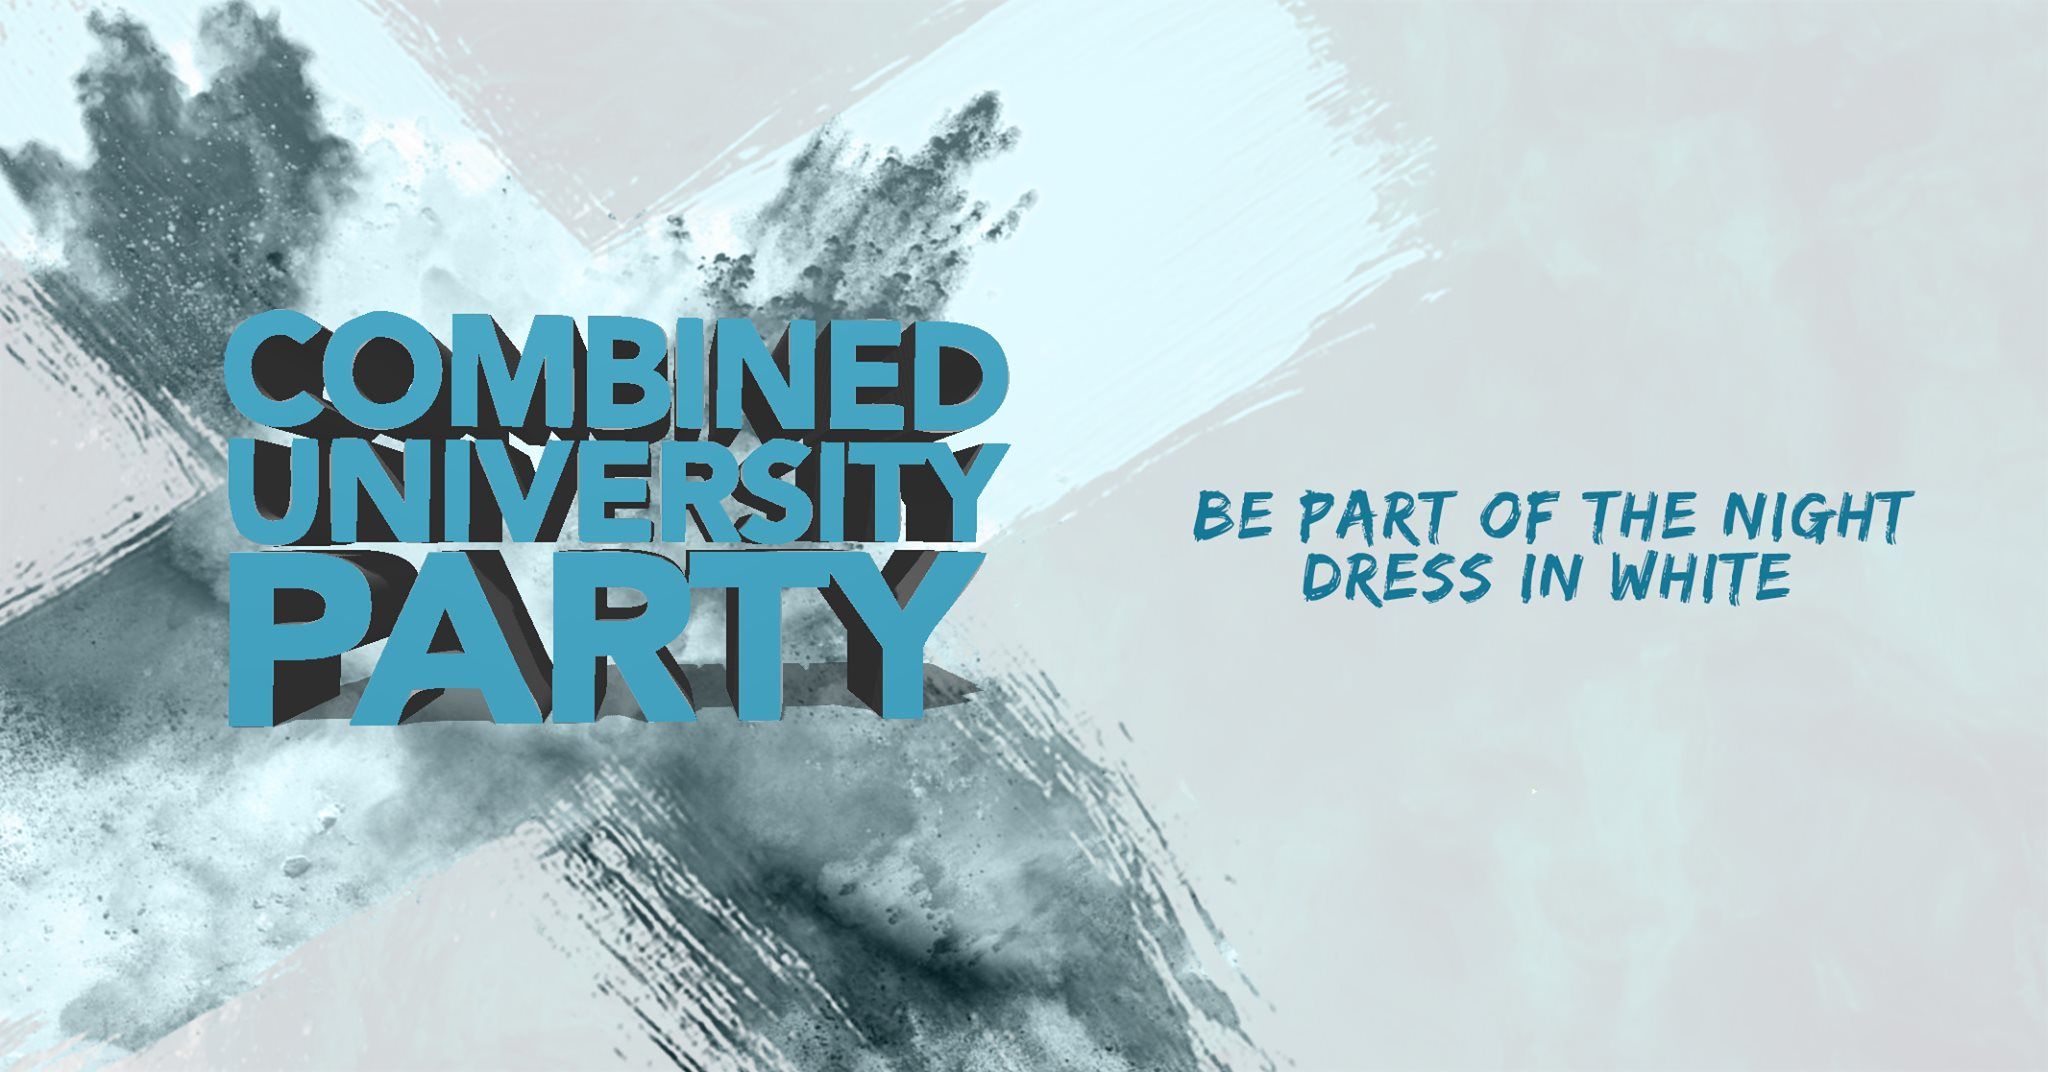 The Combined University Party 2021